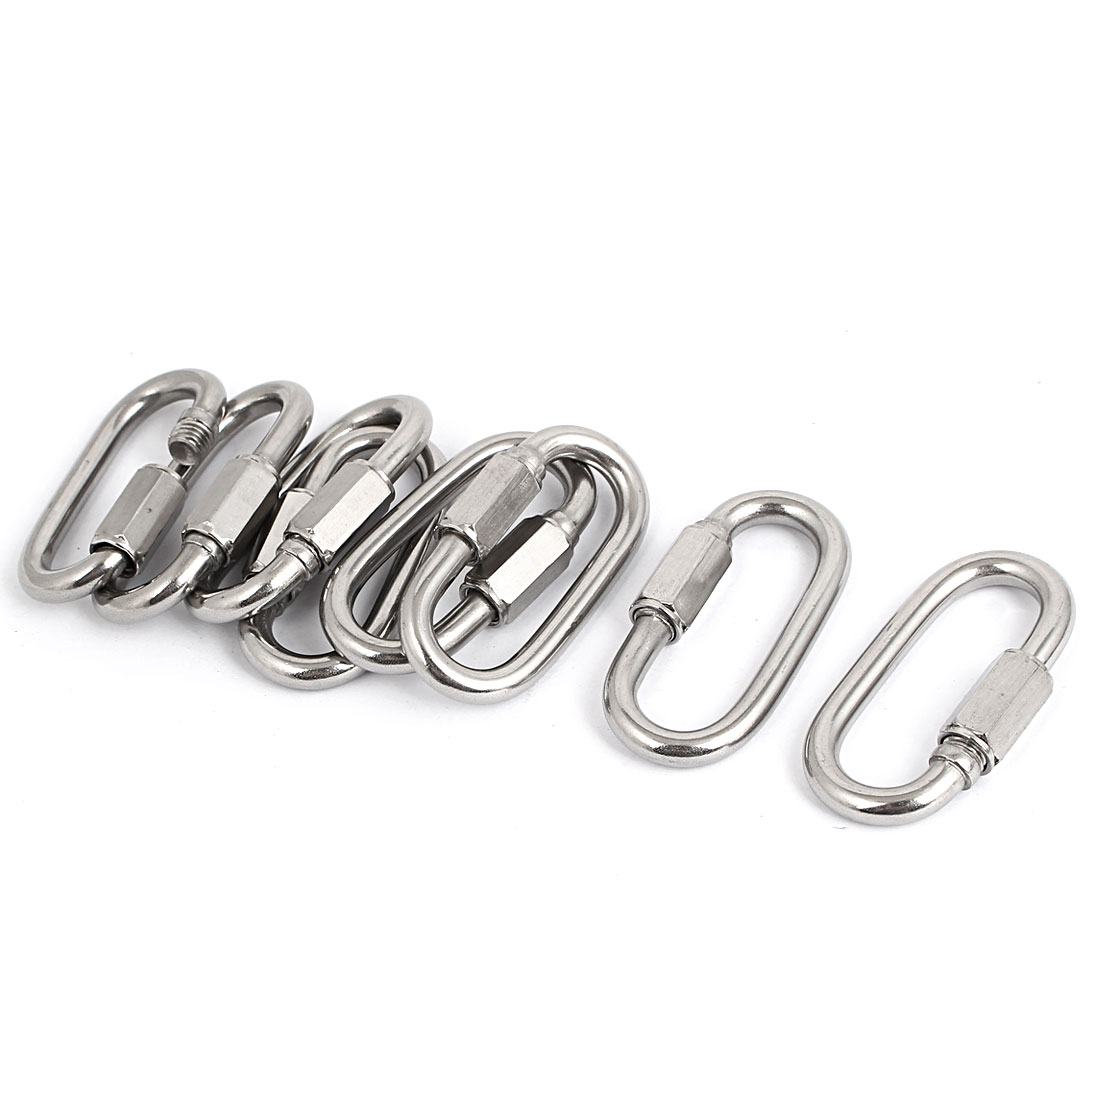 6mm Thickness Stainless Steel Quick Links Carabiners 8 Pcs